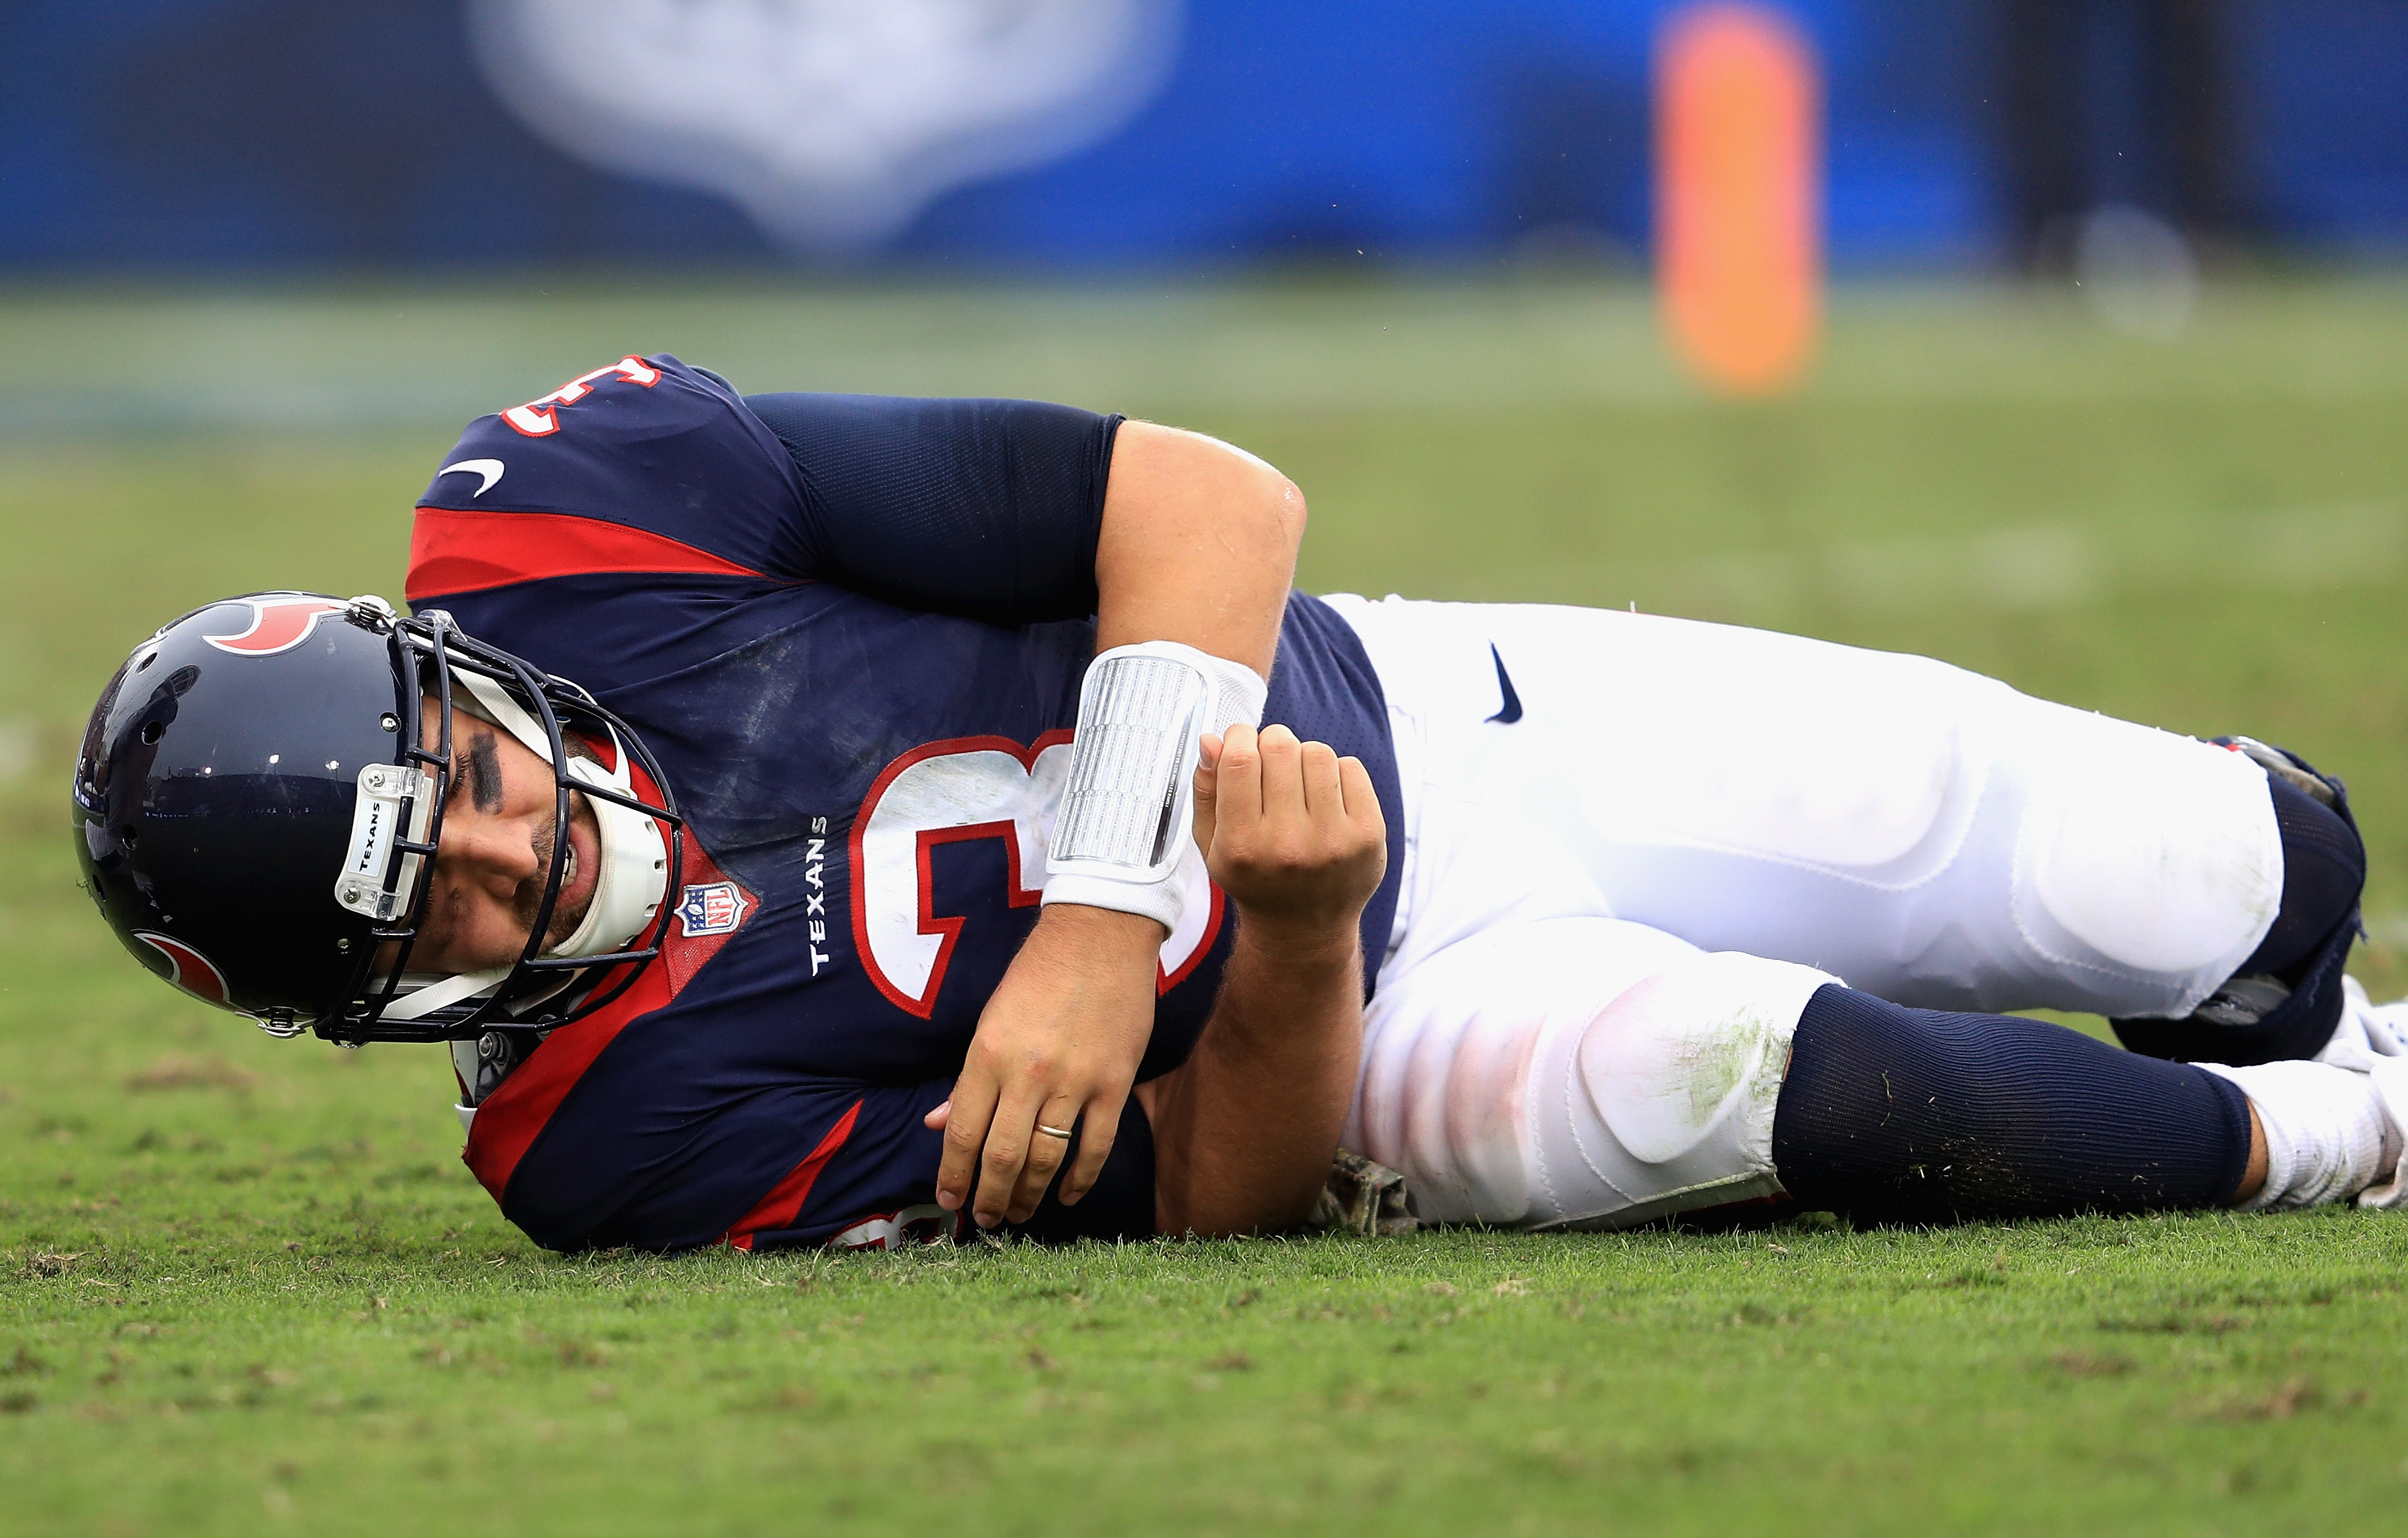 LOS ANGELES, CA - NOVEMBER 12:  Tom Savage #3 of the Houston Texans grimaces on the turf after fumbling the ball during the second half of game against the Los Angeles Rams  at Los Angeles Memorial Coliseum on November 12, 2017 in Los Angeles, California.  (Photo by Sean M. Haffey/Getty Images)